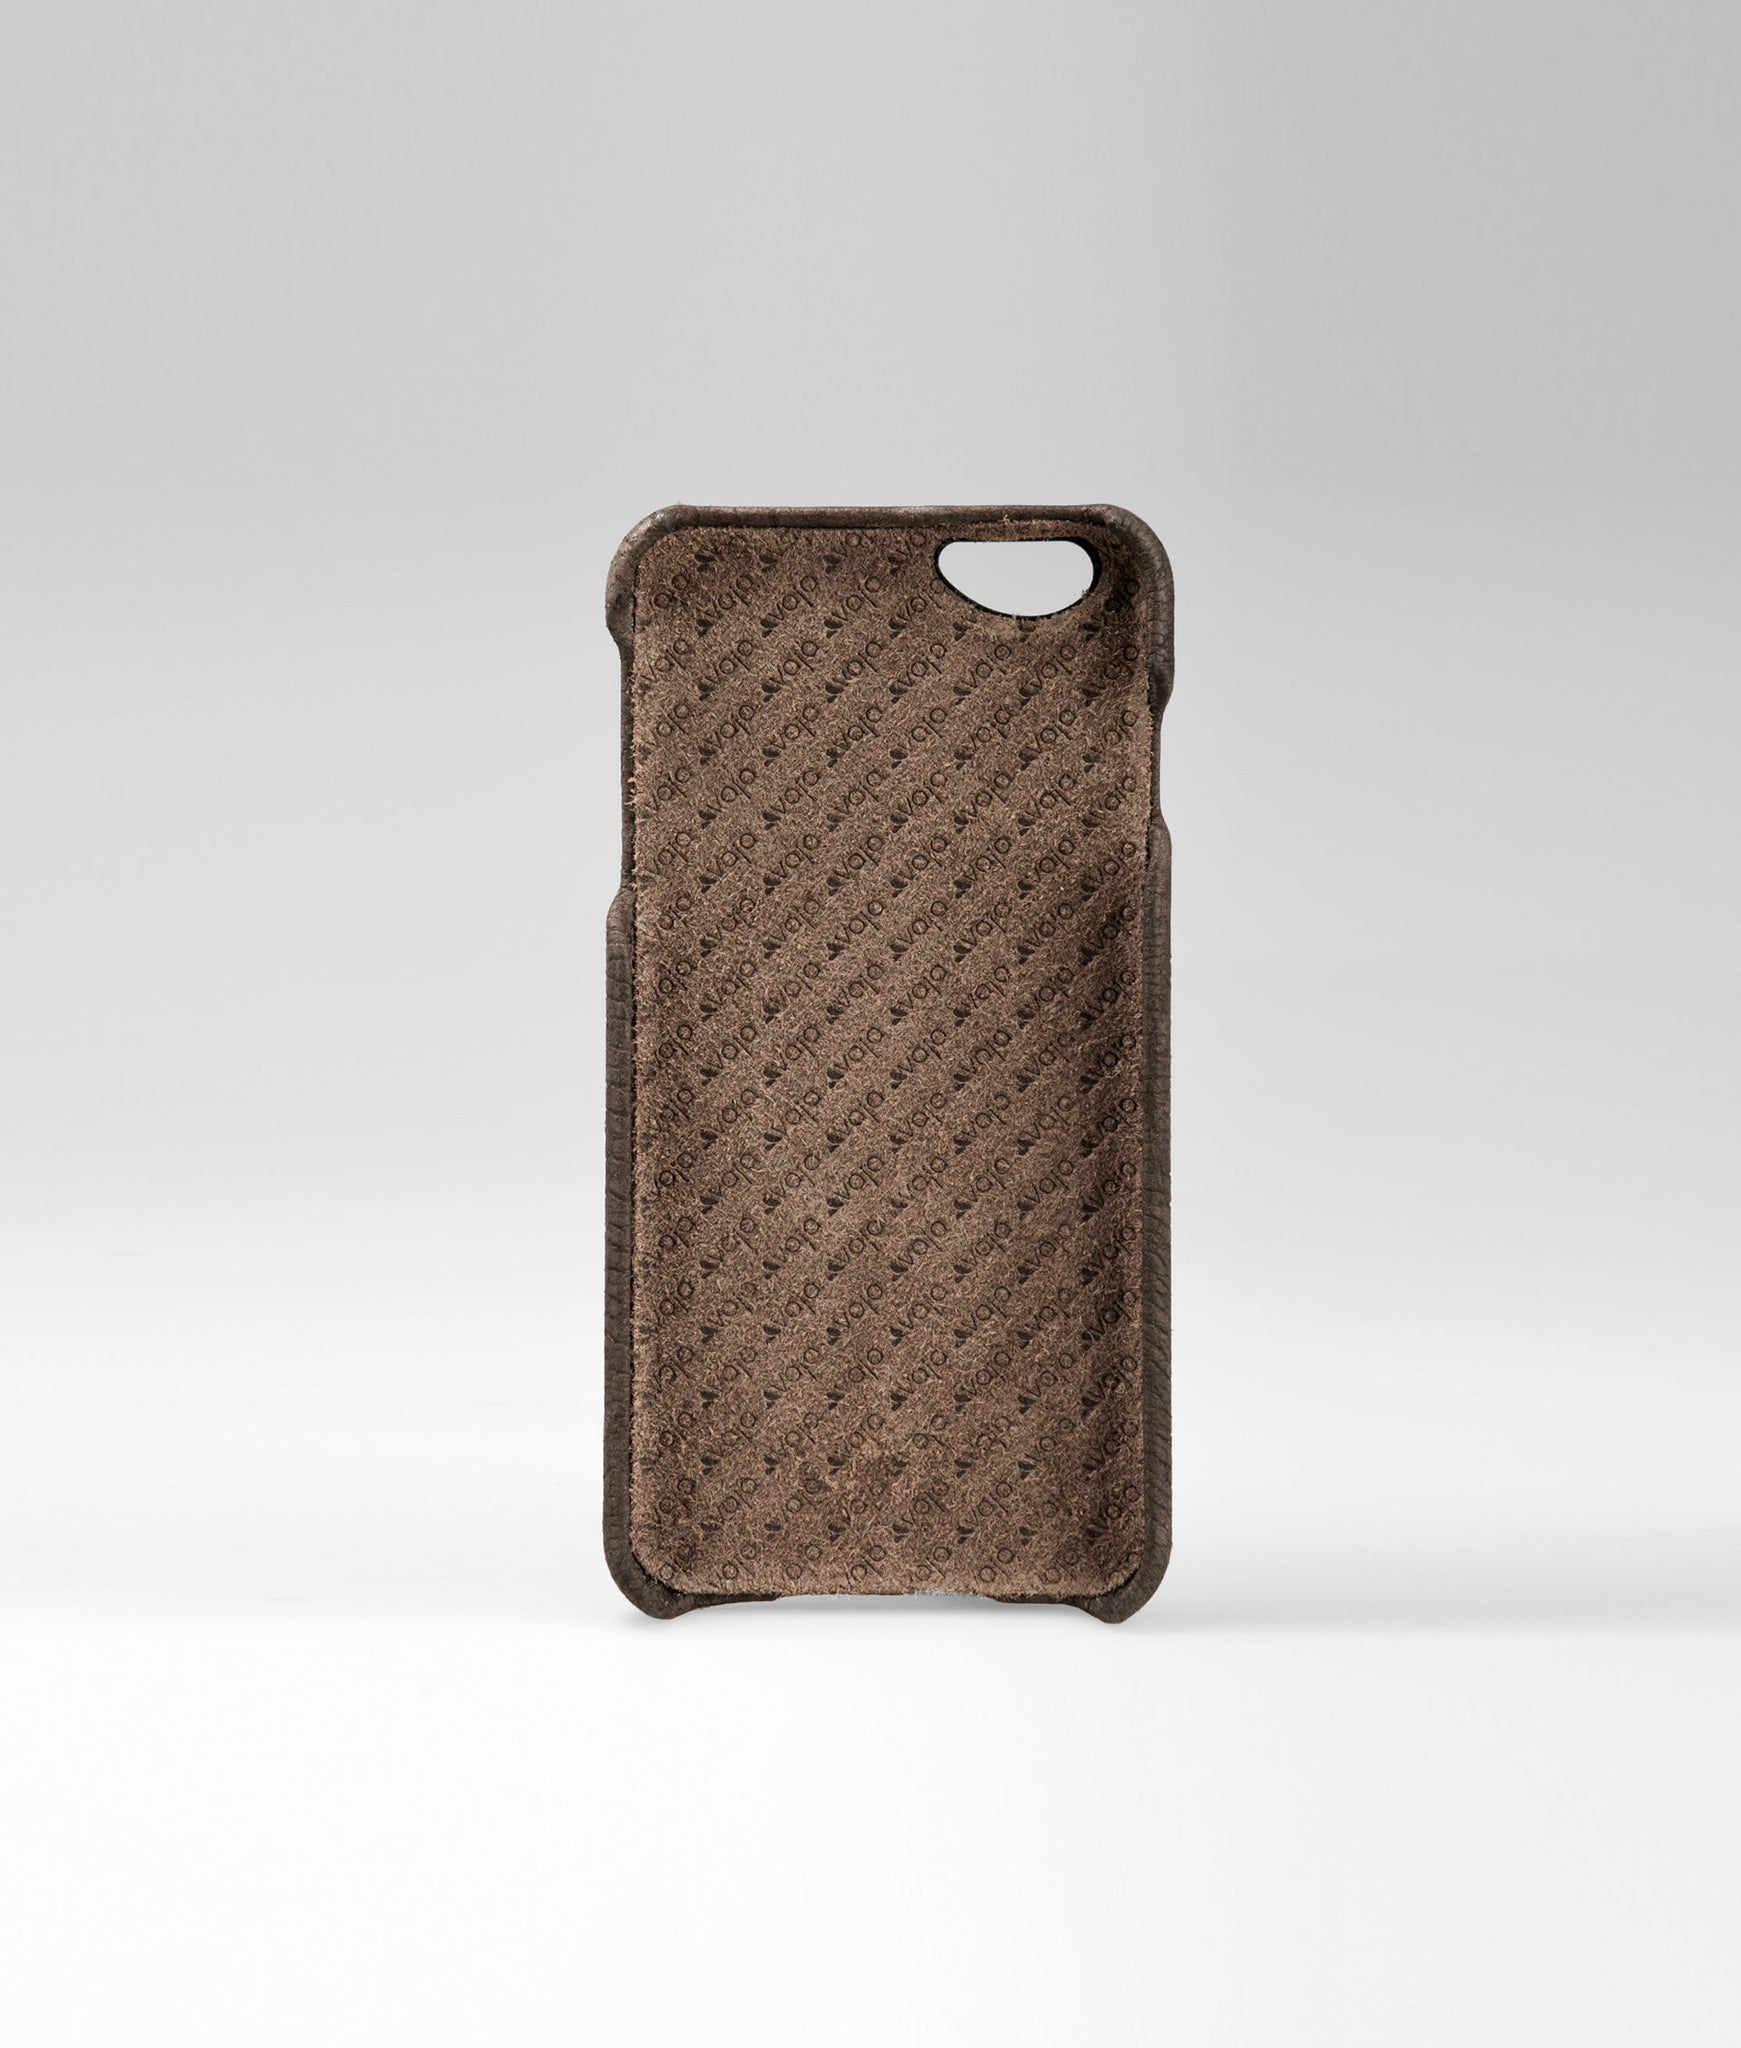 iPhone 6/6s Plus Leather Case Grip Carihué